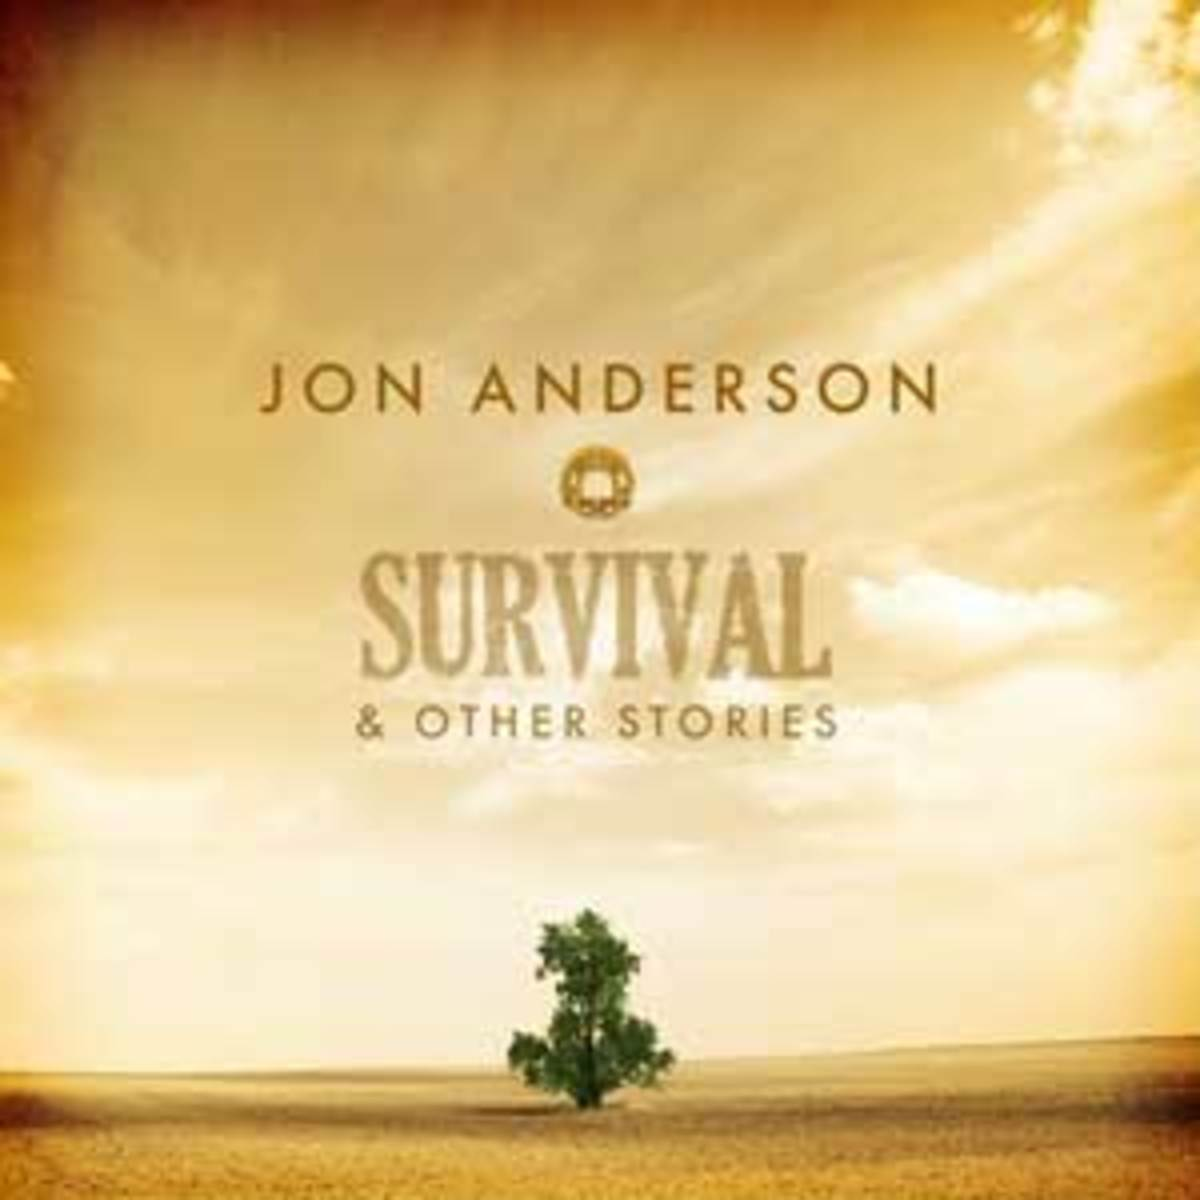 Jon_Anderson_-_Survival_&_Other_Stories_-_cover